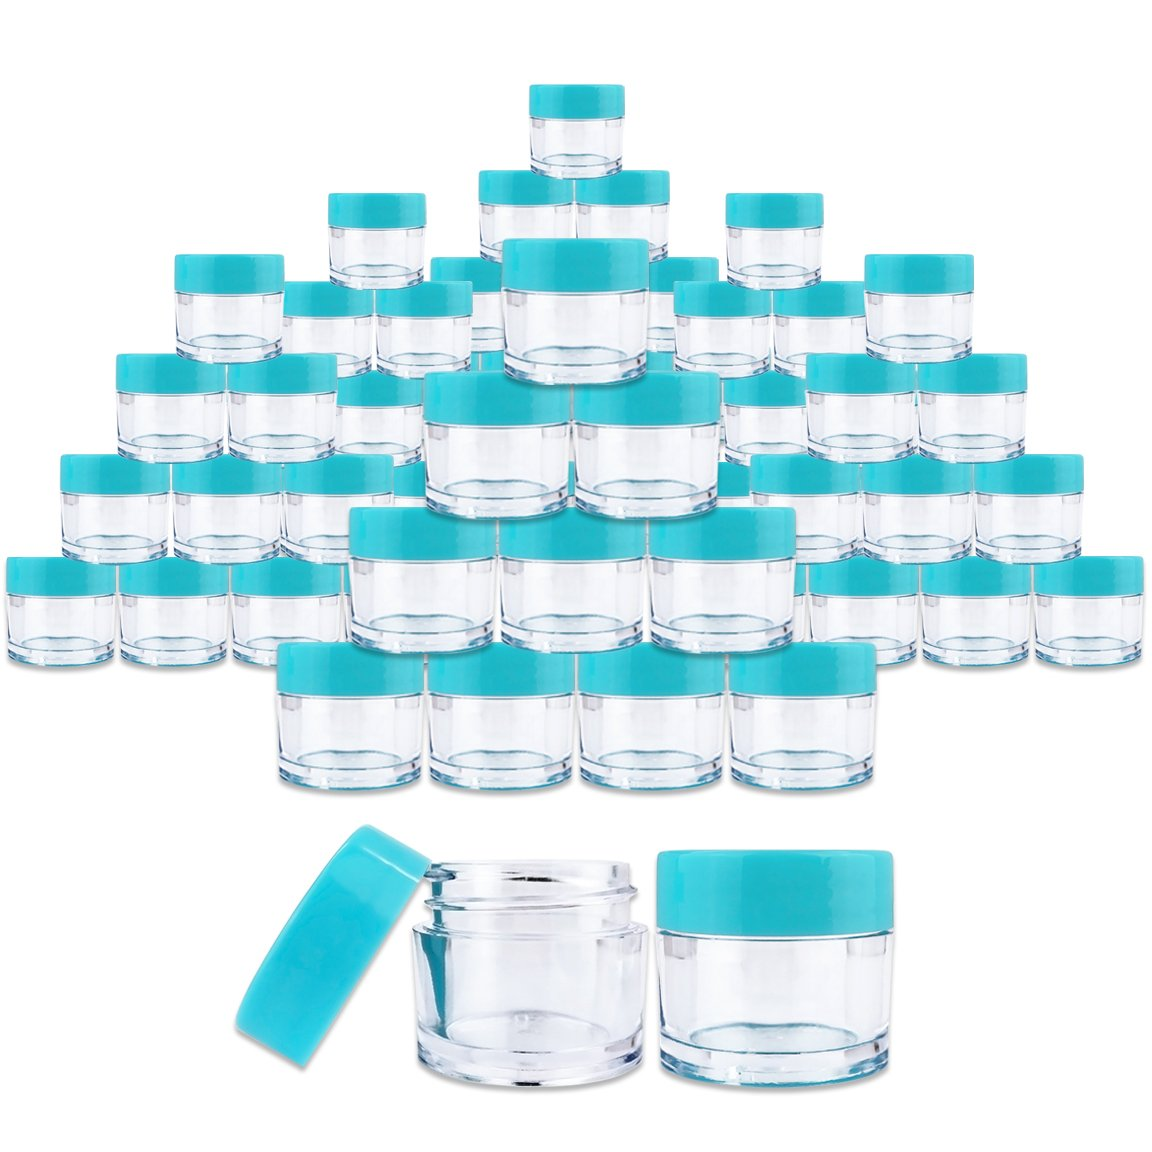 Beauticom 7 Gram 7 ML Quantity 60 Pieces Thick Wall Round Leak Proof Clear Acrylic Jars with Teal Lids for Beauty, Cream, Cosmetics, Salves, Scrubs